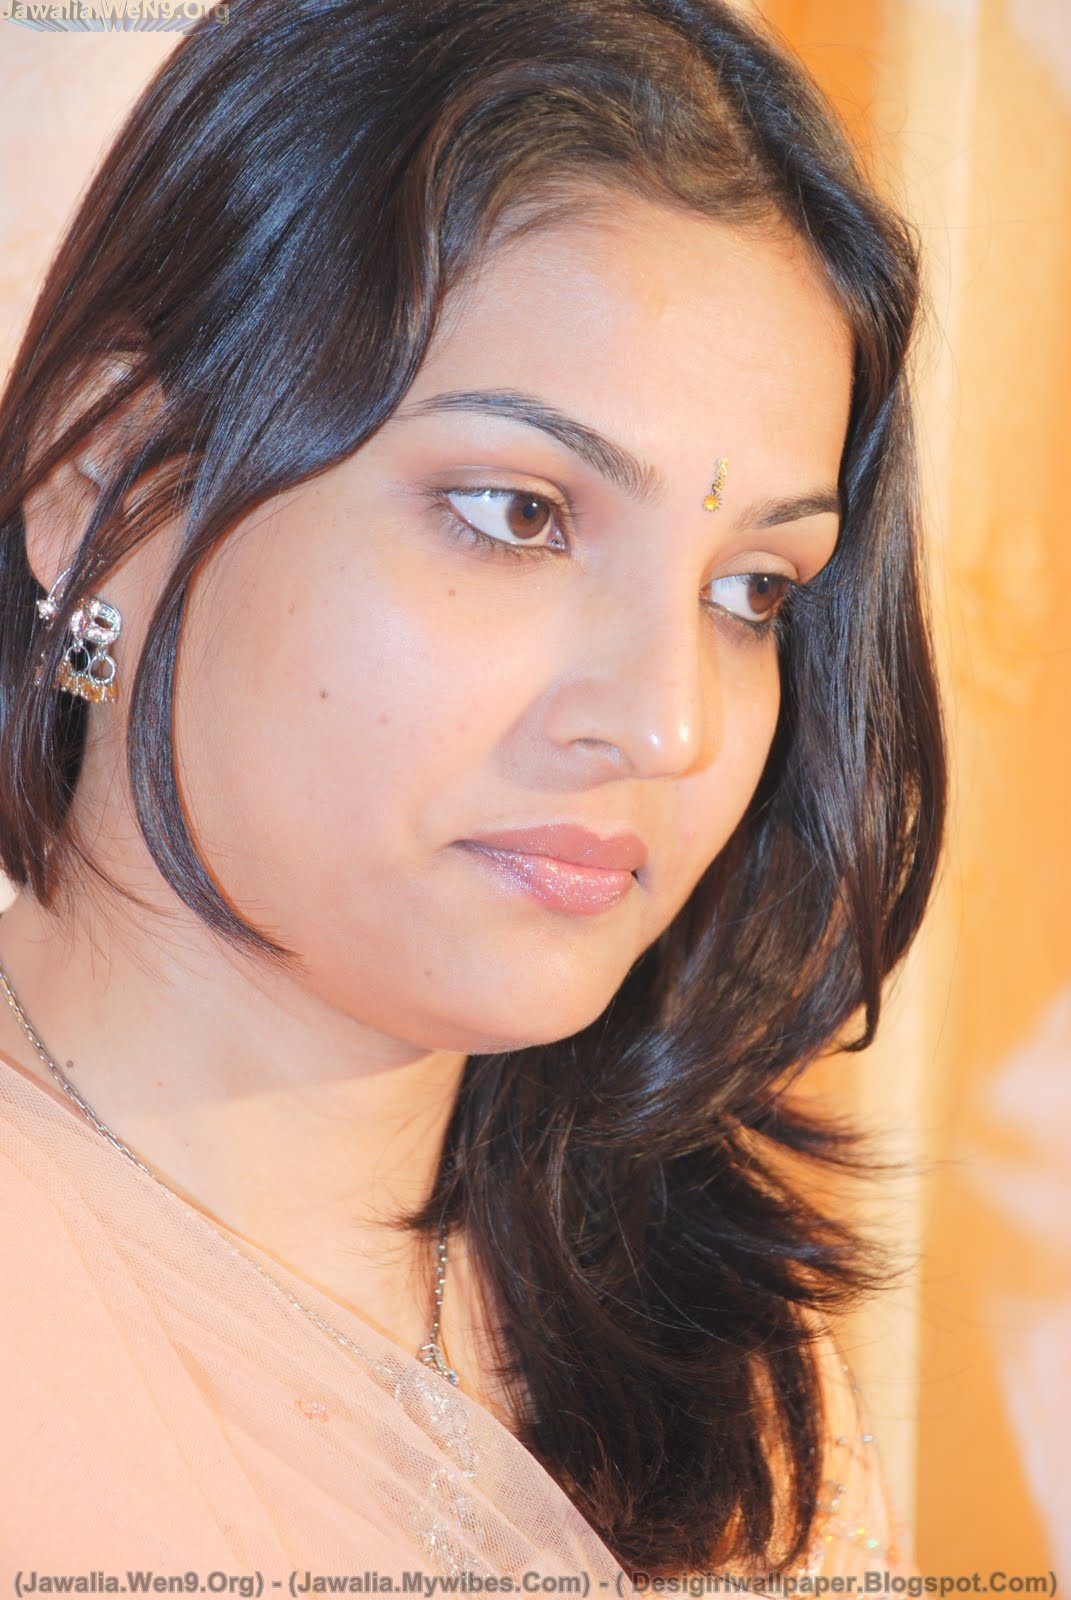 Indias No-1 Desi Girls Wallpapers Collection: Hottest